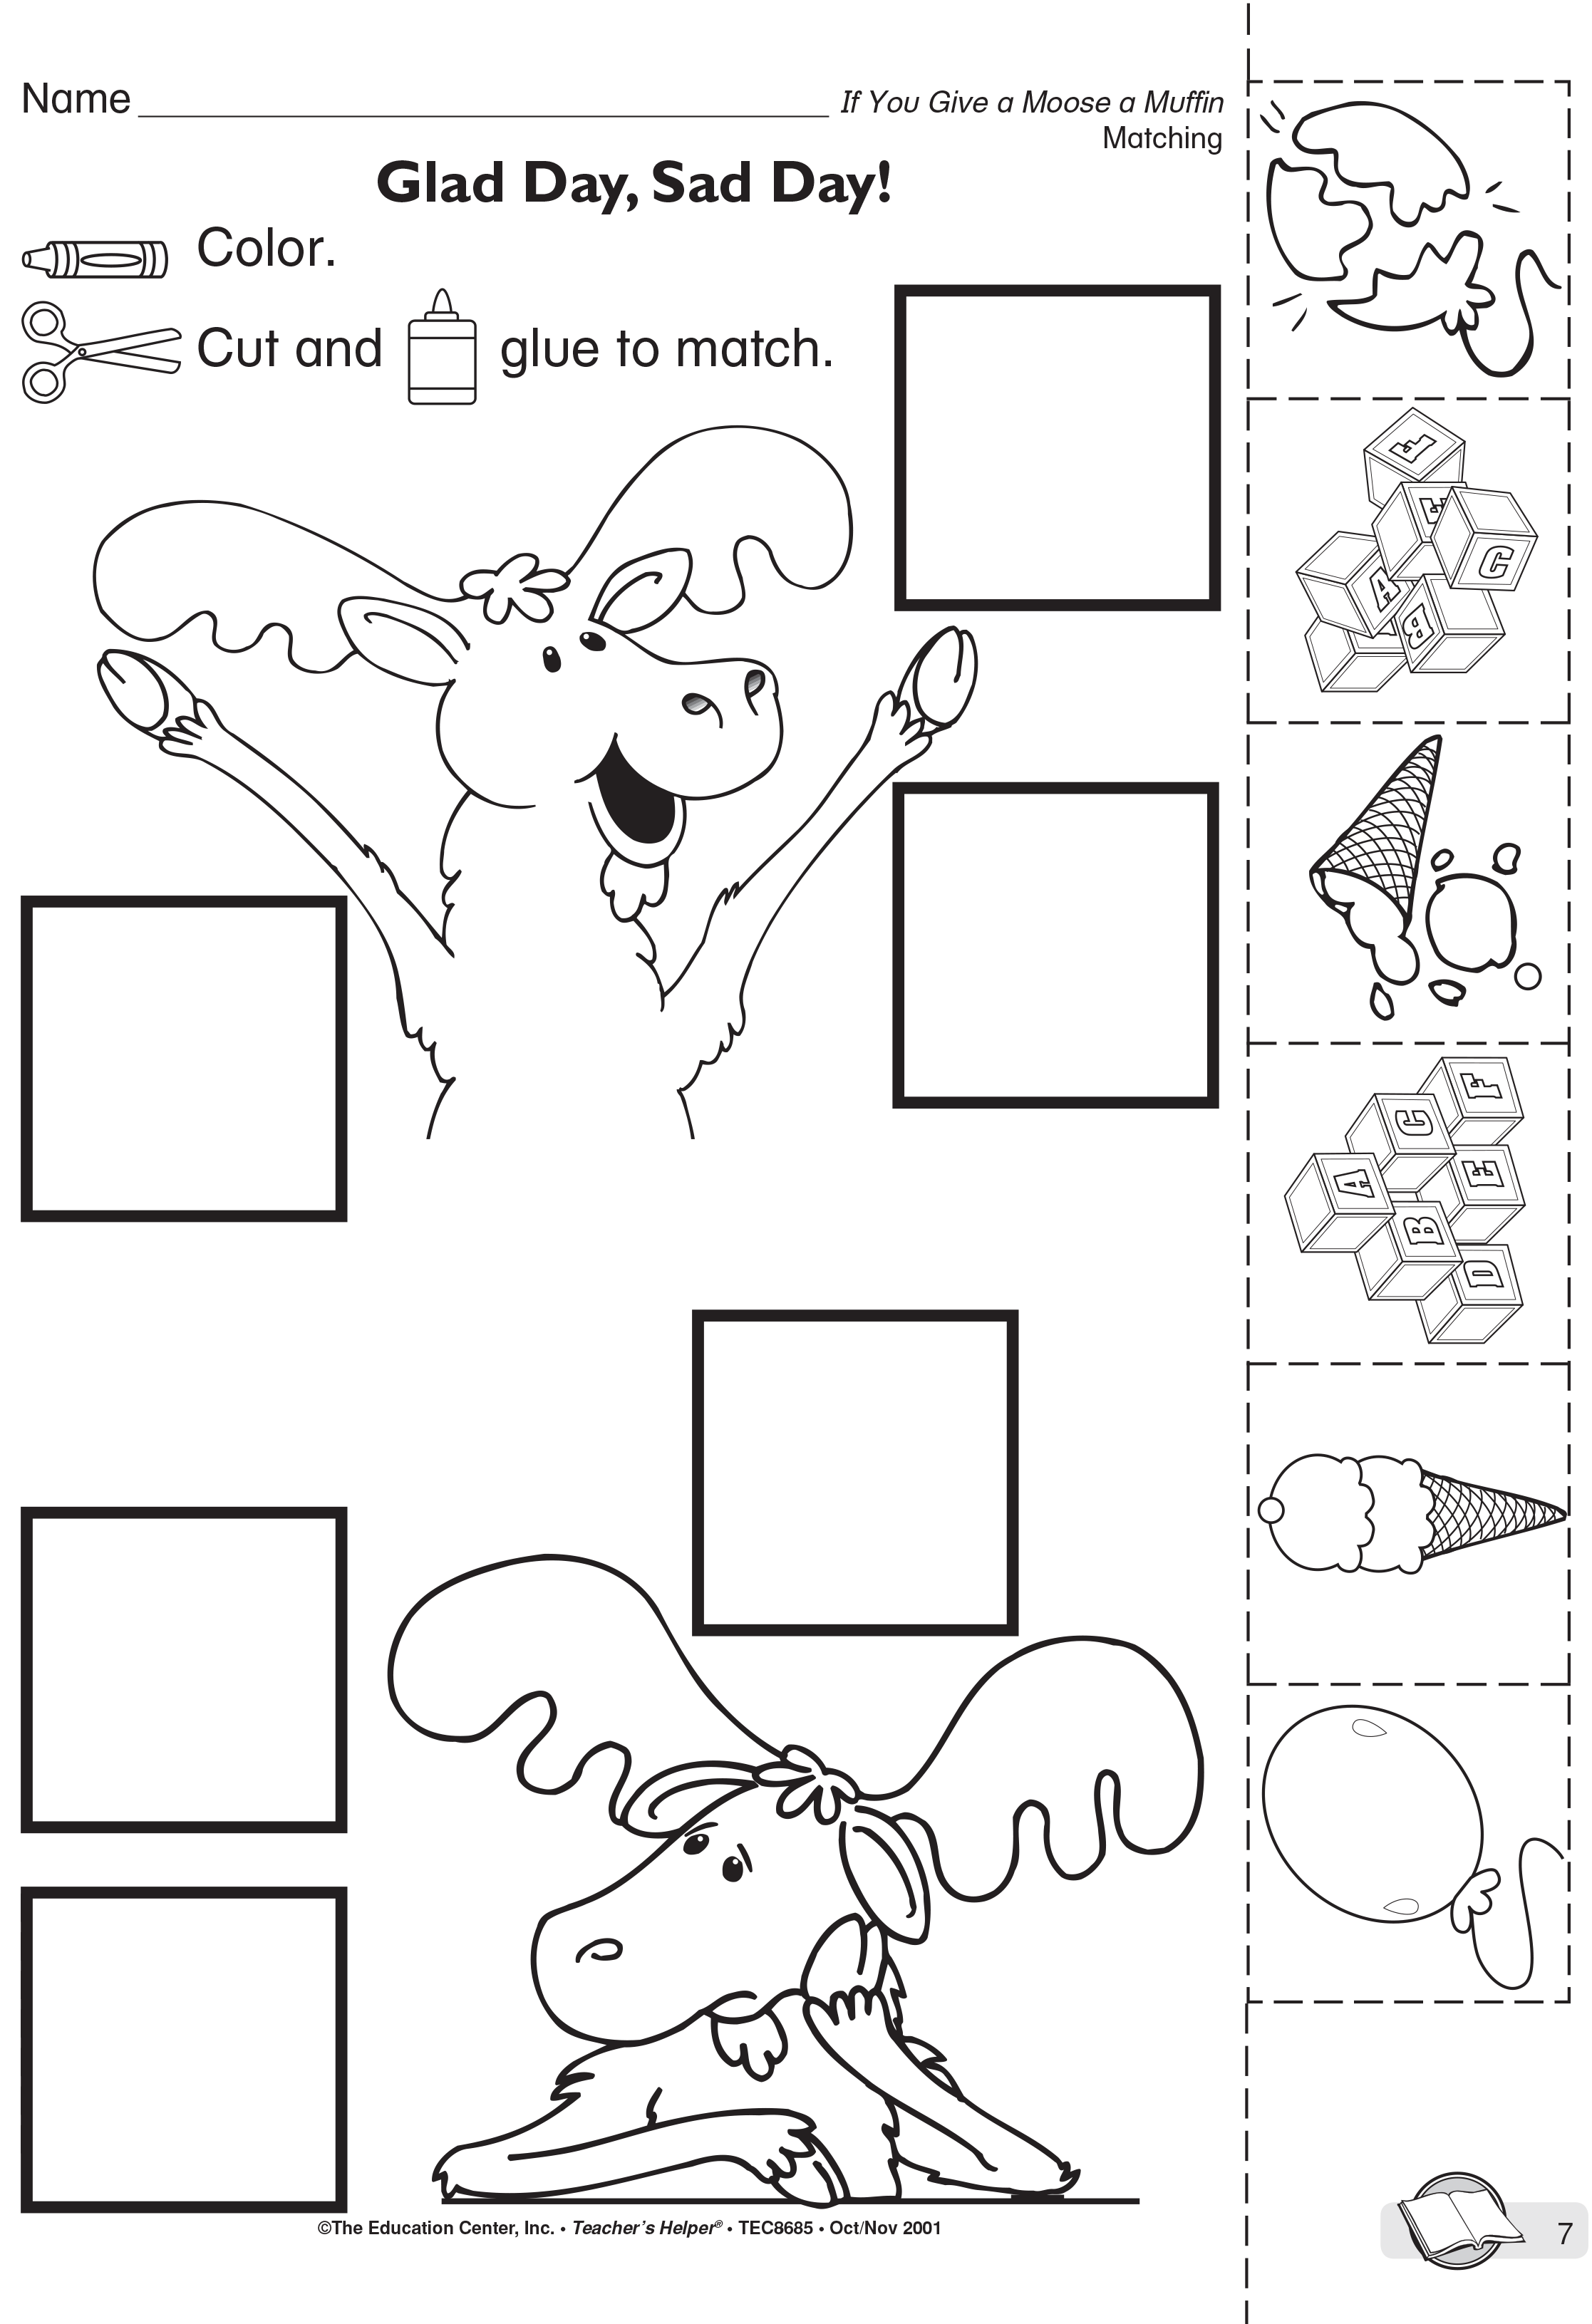 Coloring page classroom activities. Muffin clipart if you give a moose a muffin